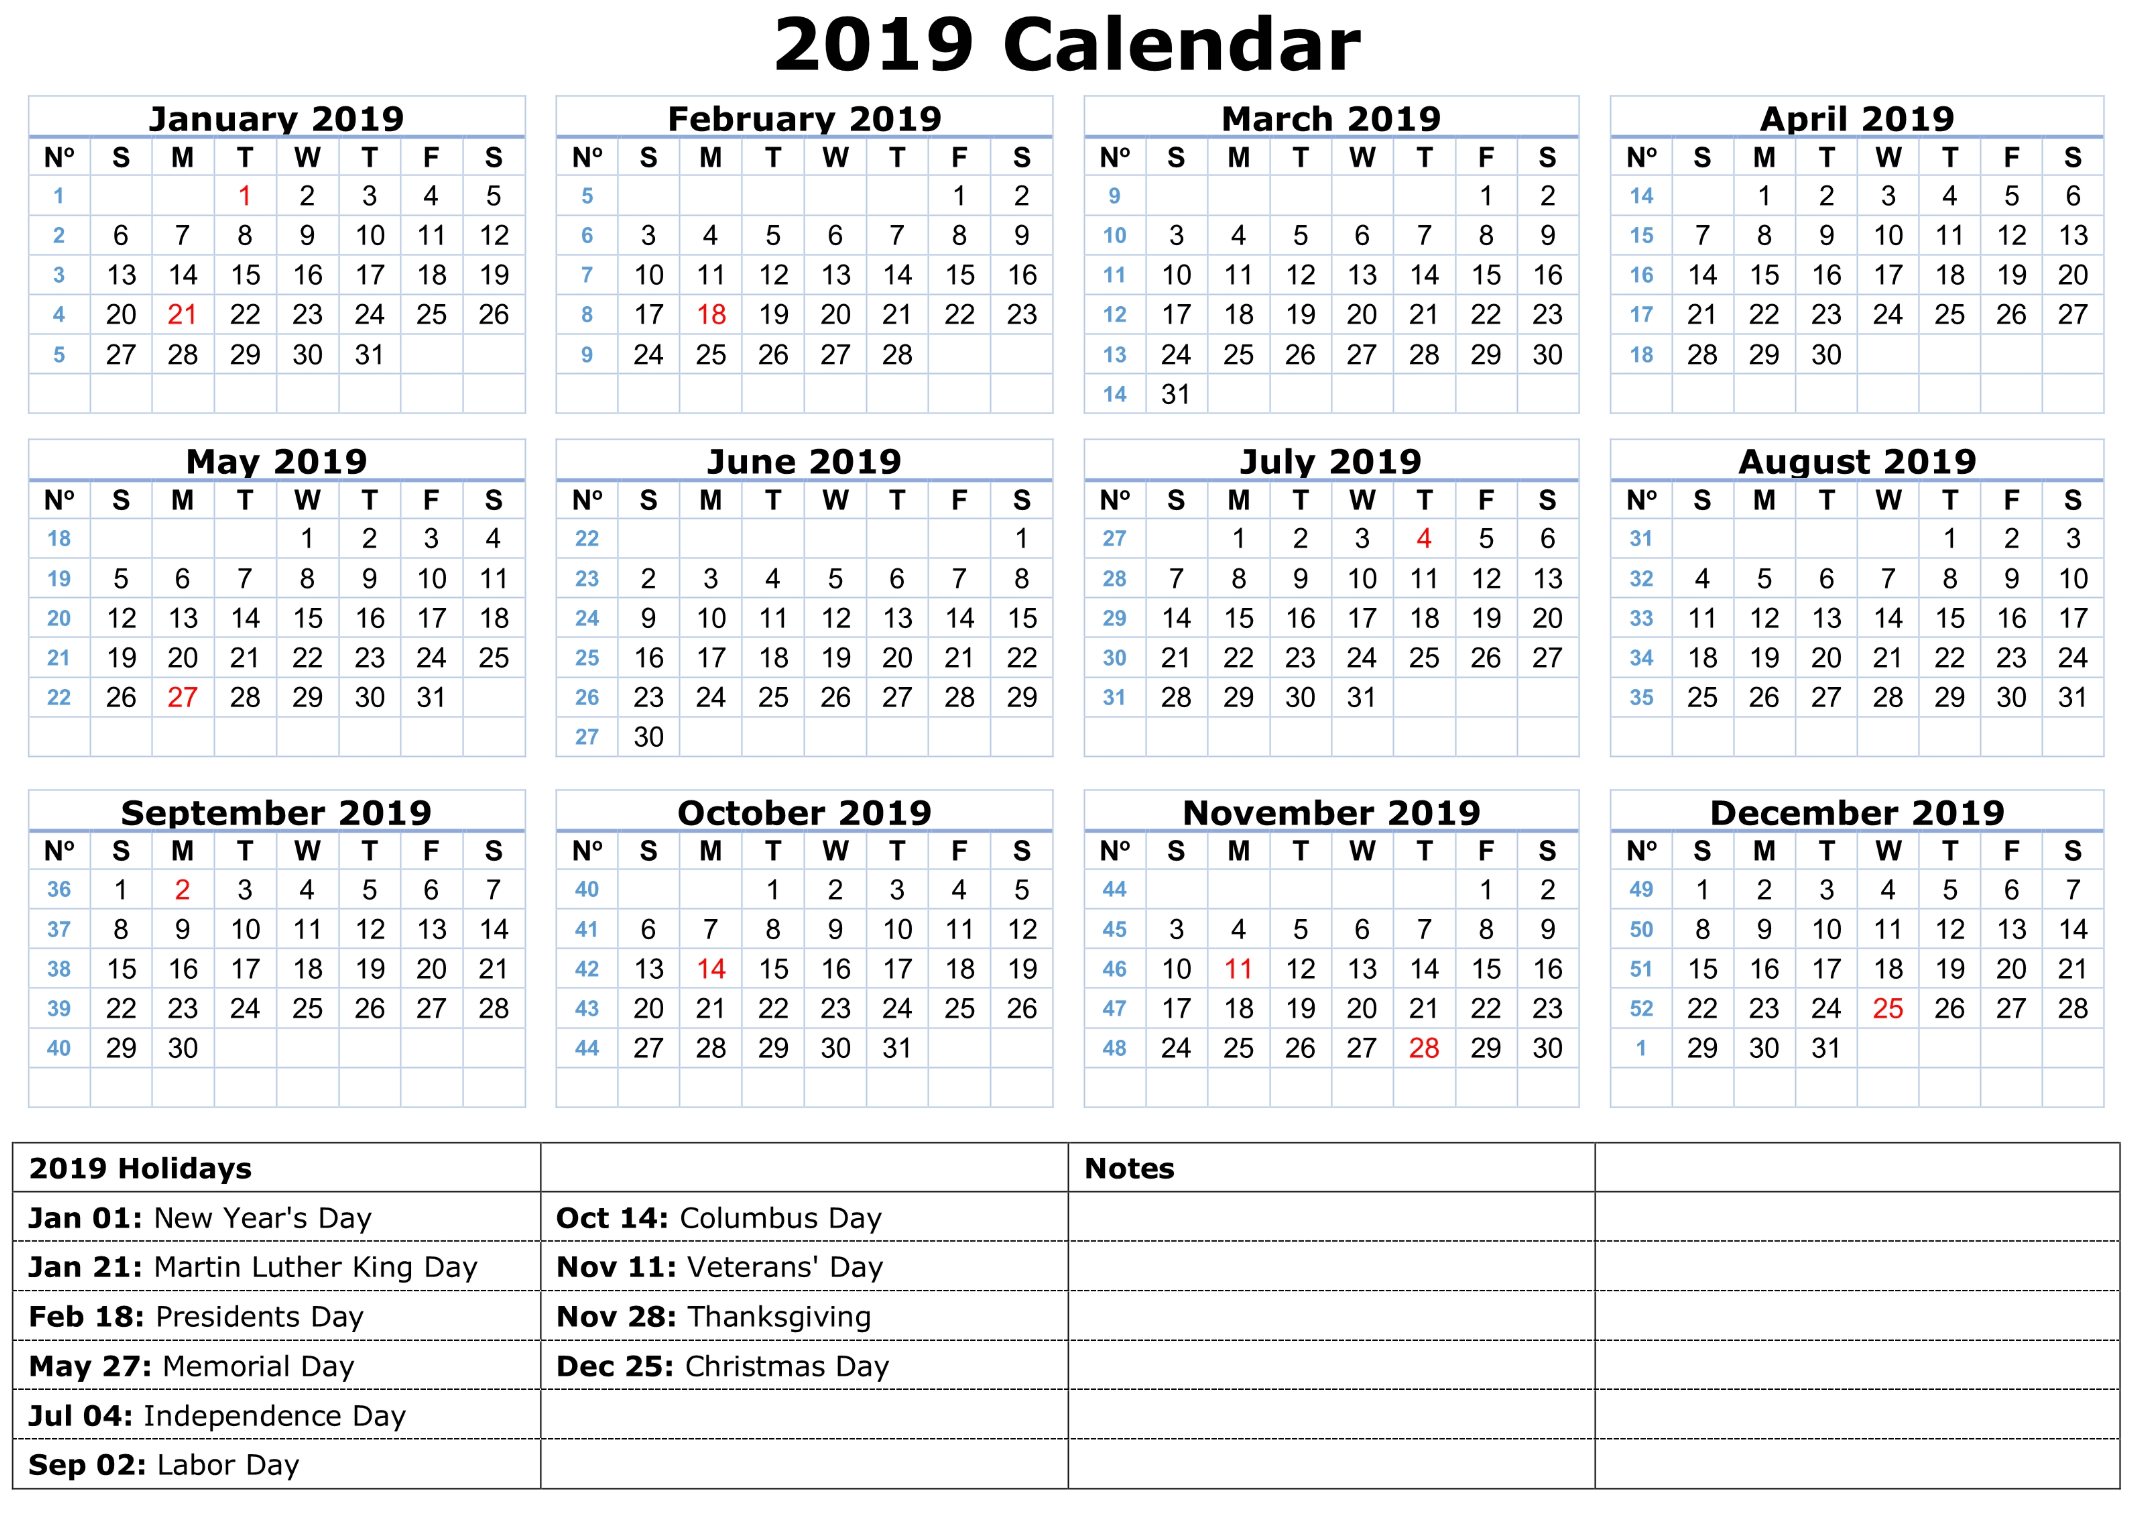 Printable Calendar 2019 With Holidays | Printable Calendar 2019 for Blank Calendar Print-Outs Fill In With Holidays